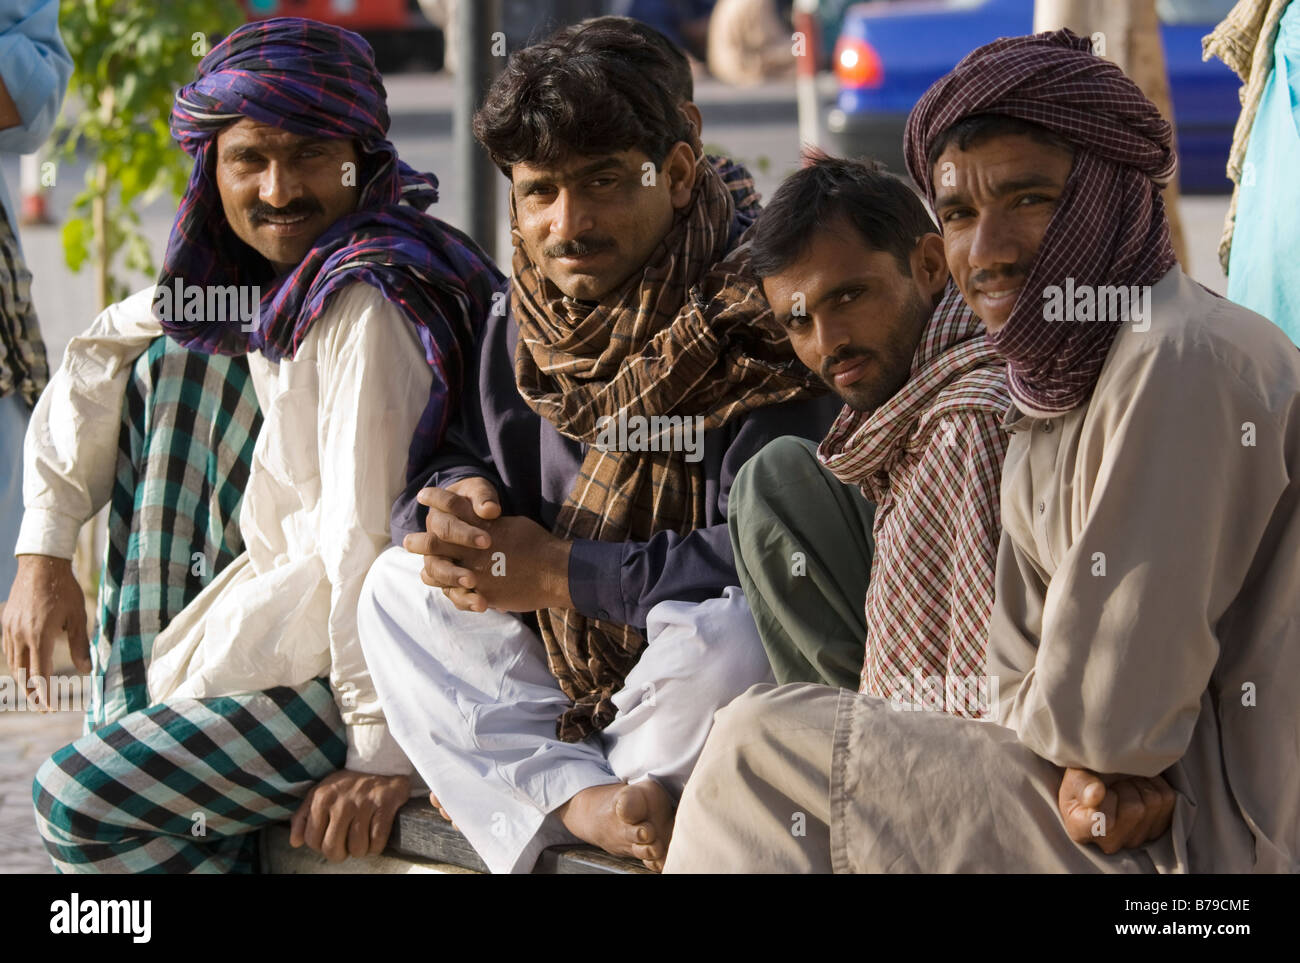 Group of dock workers, Dubai Creek - Stock Image